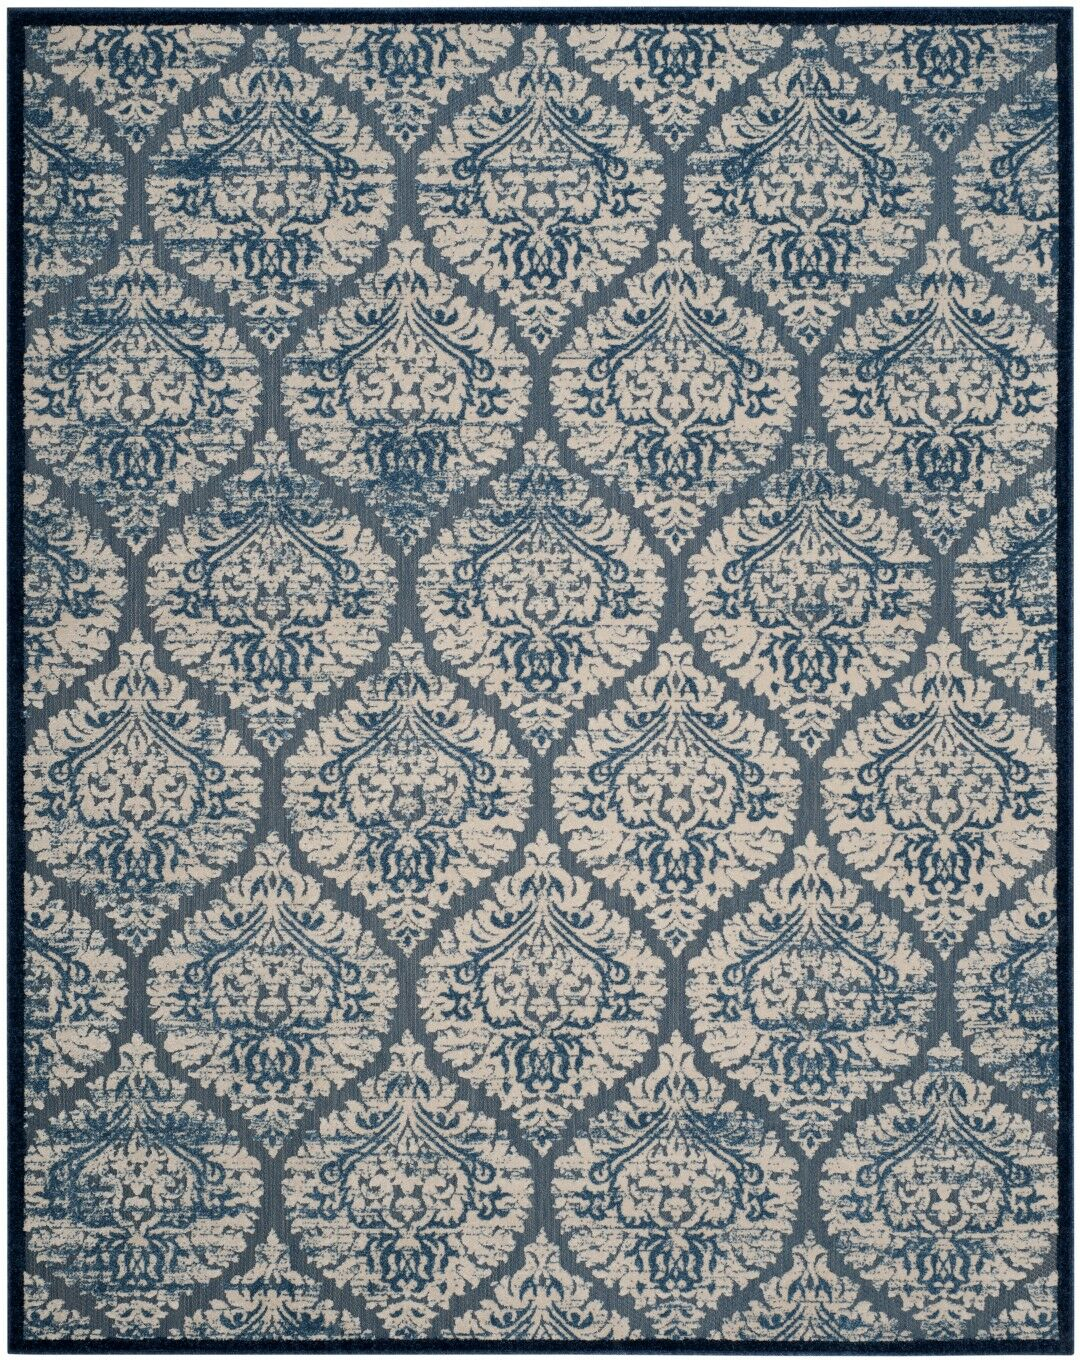 Parsons Blue/Cream Area Rug Rug Size: Rectangle 9' x 12'